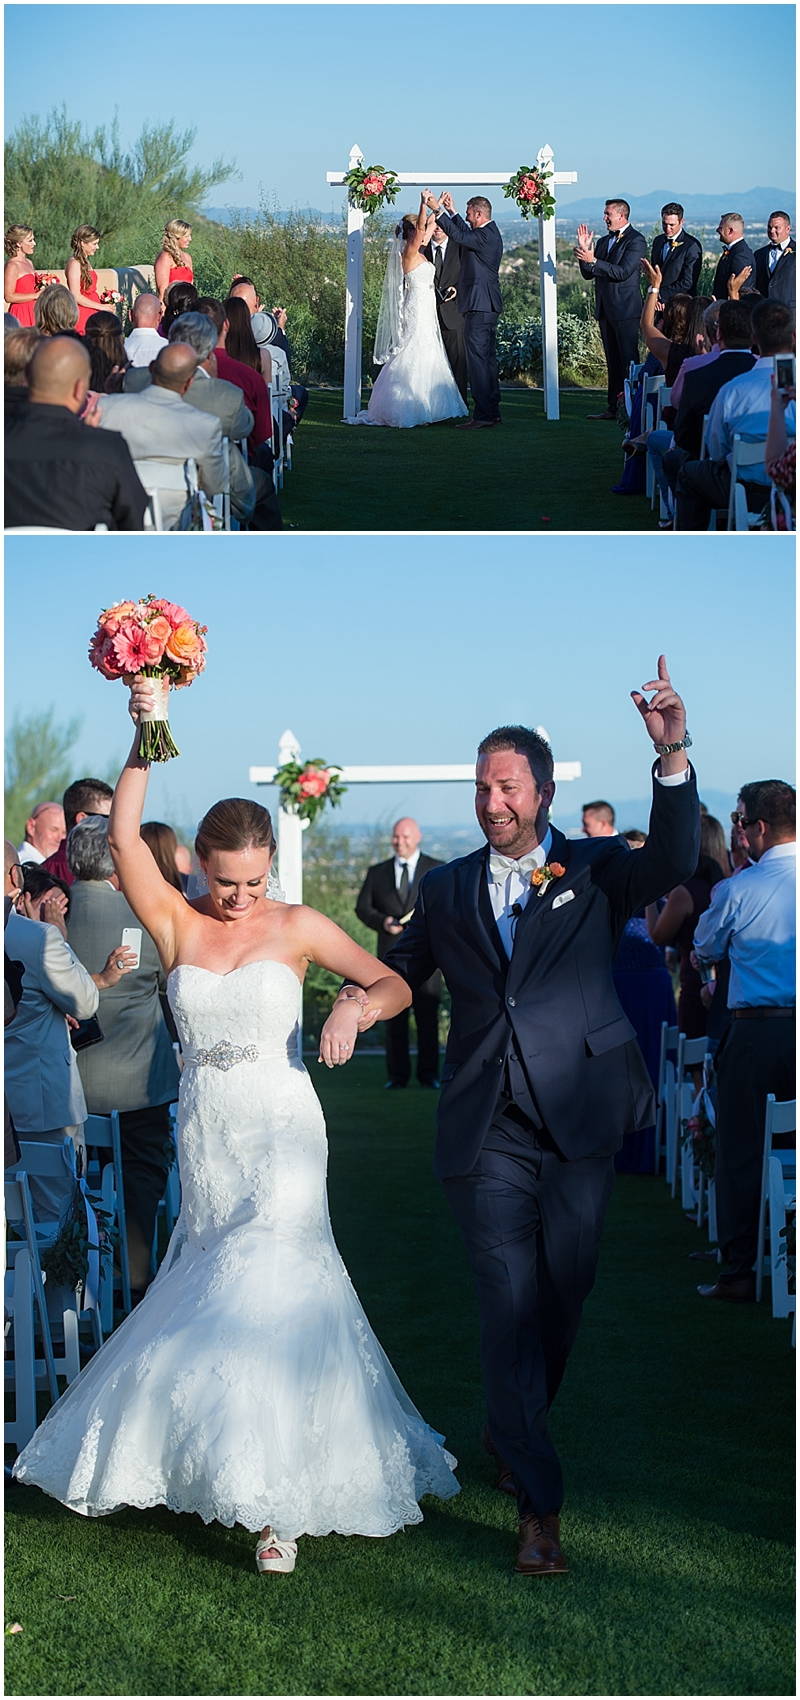 Tucson-wedding-bride-and-groom-walking-down-isle-celebration.jpg